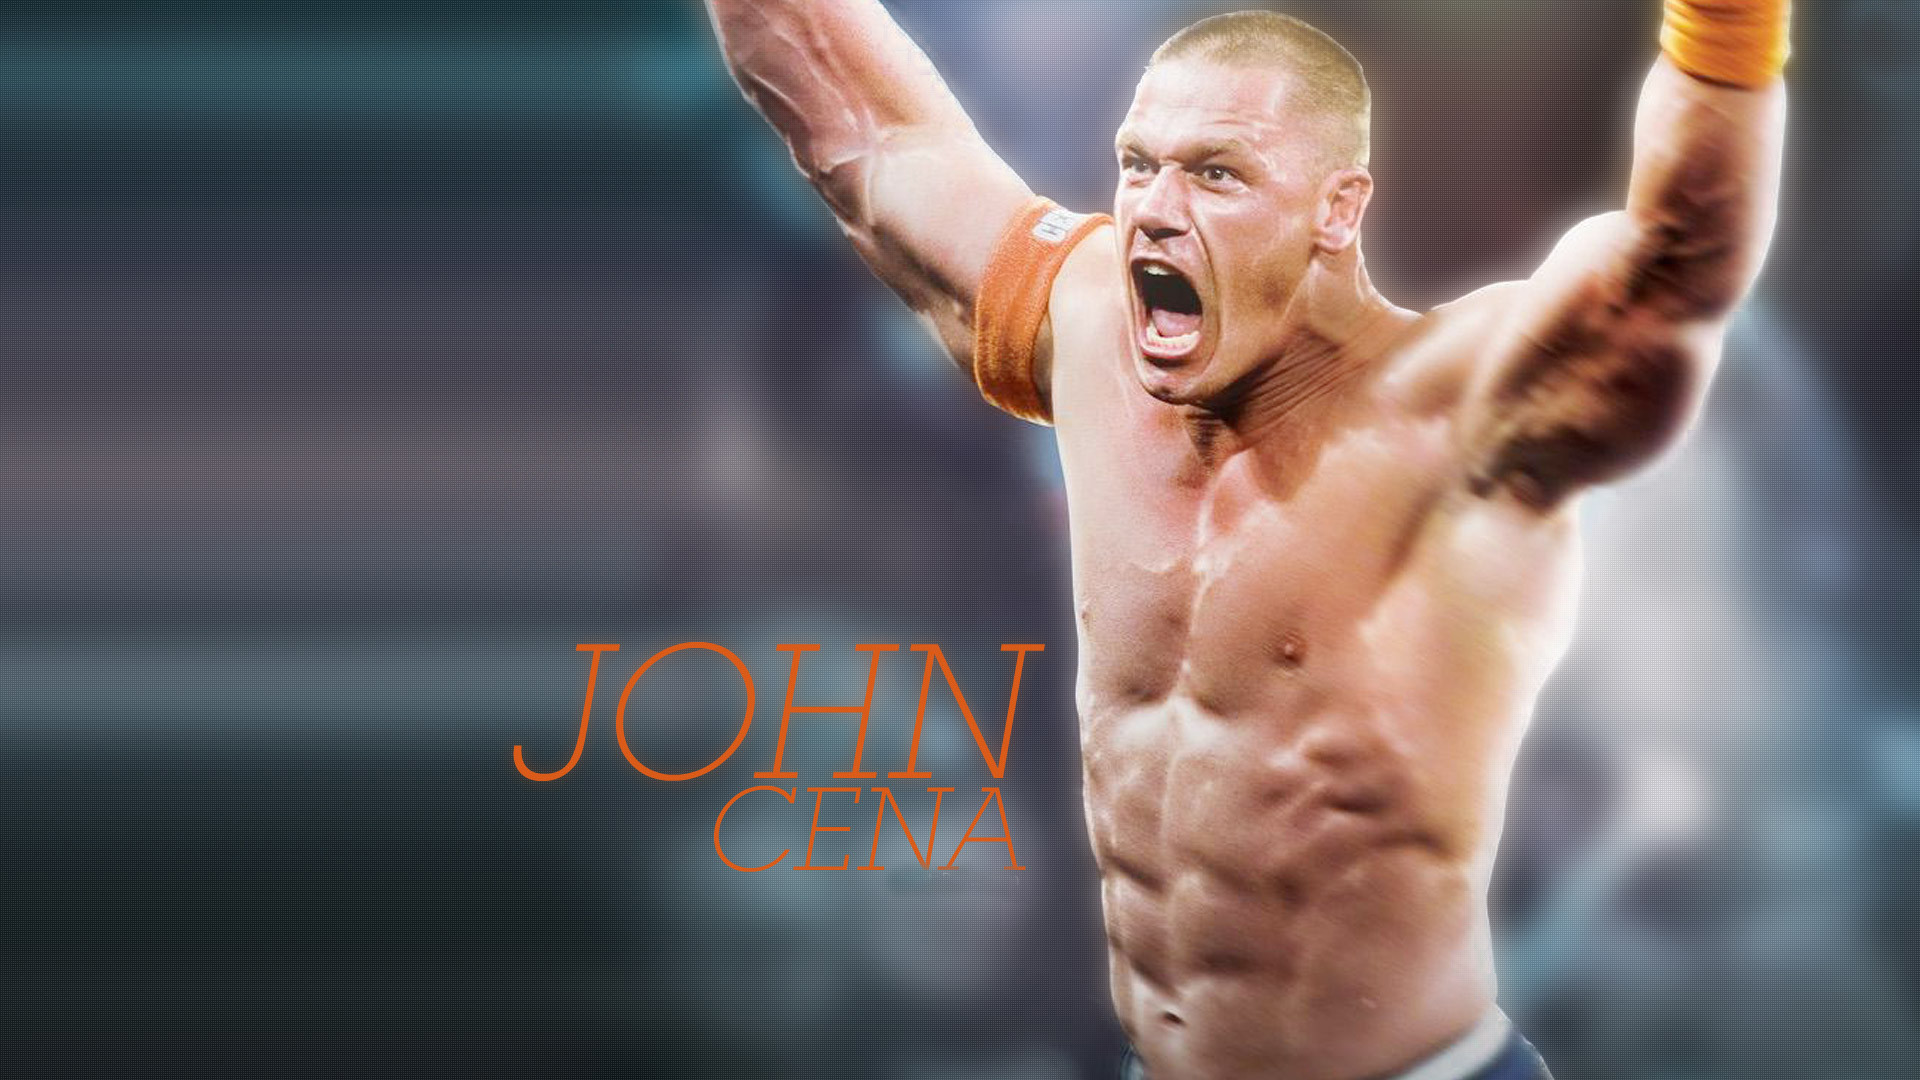 1920x1080 John Cena Wallpapers For Computer - Wallpaper Cave